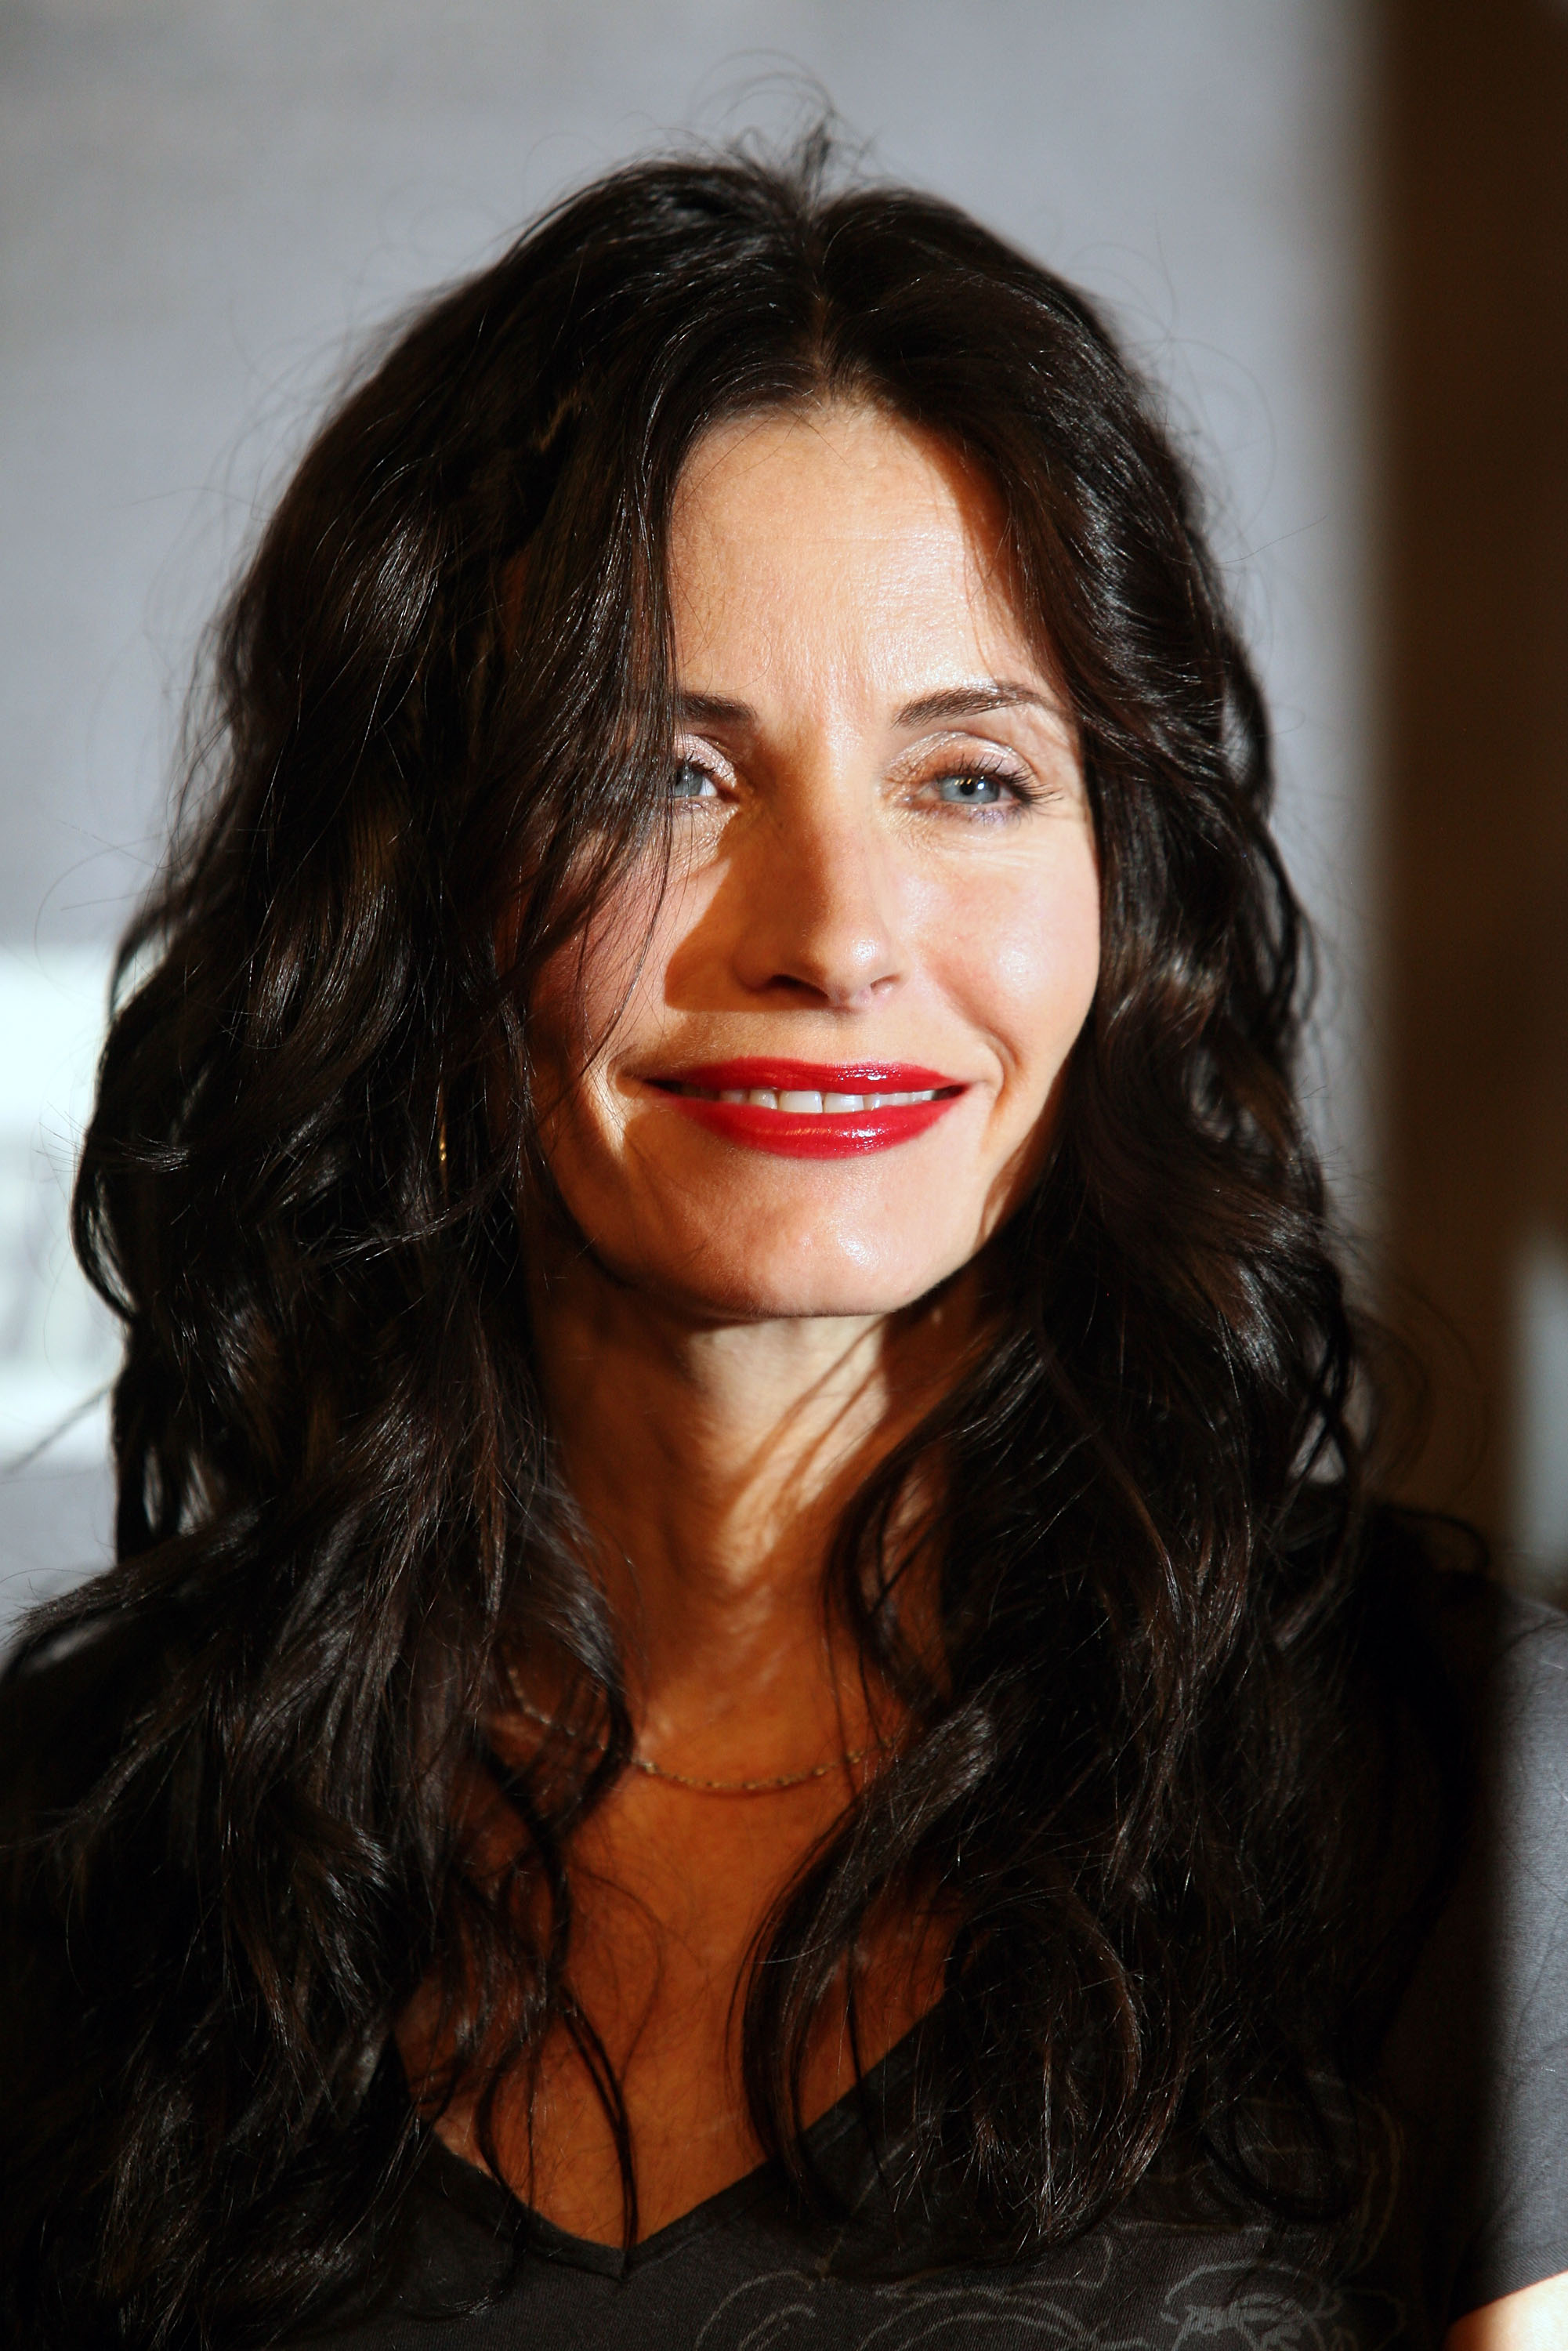 55219_Celebutopia-Courteney_Cox-Launch_Party_for_Fallout_3_videogame-12_122_220lo.jpg